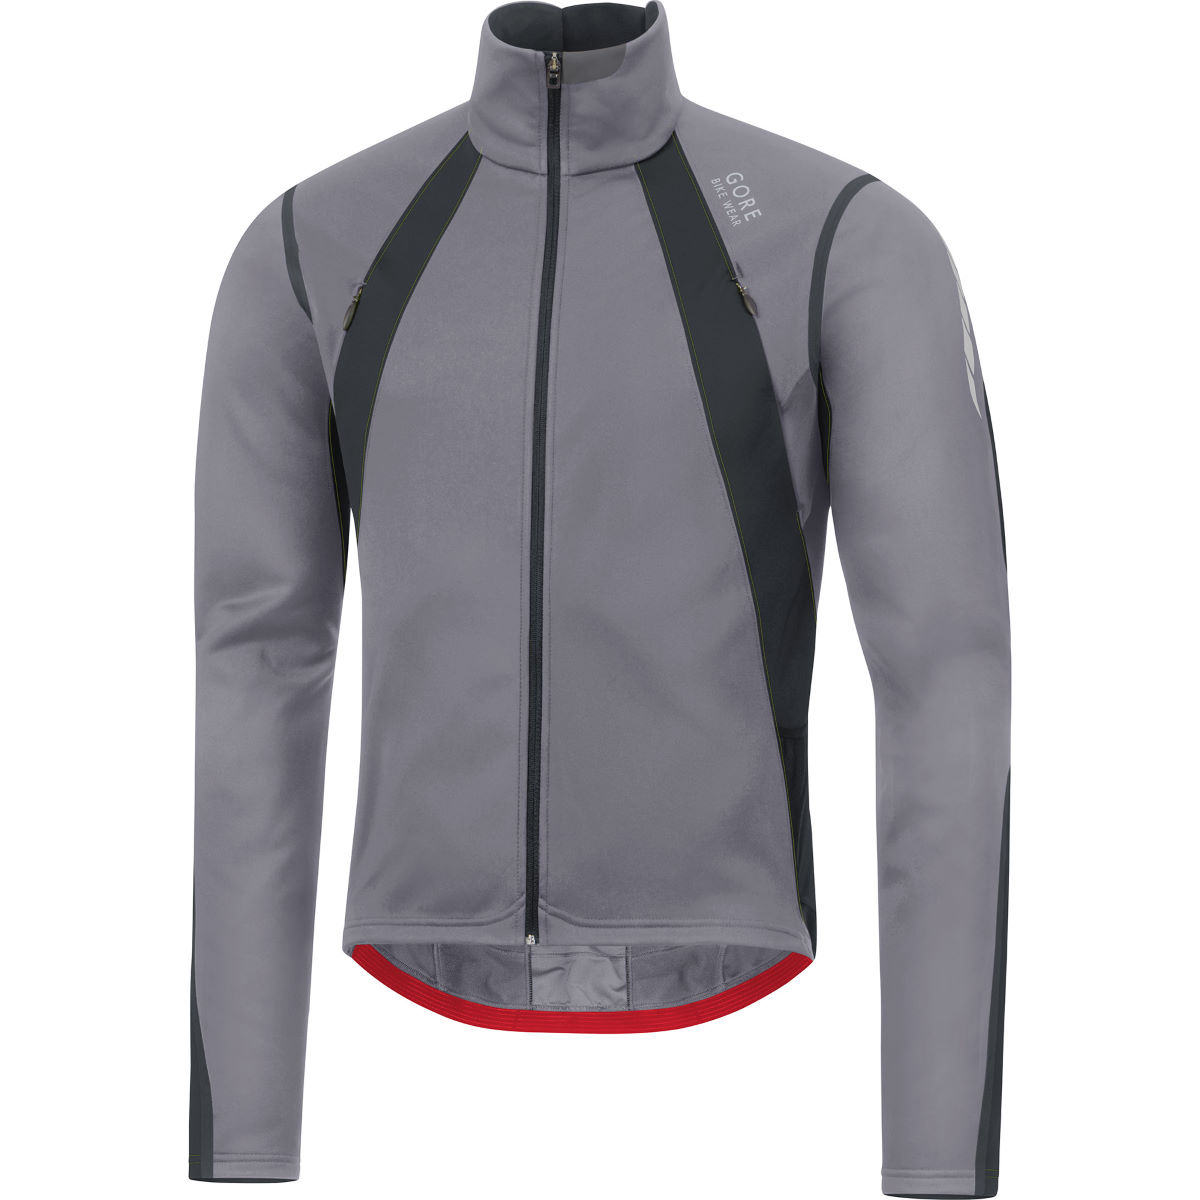 Veste Gore Bike Wear Oxygen Windstopper - M Asteroid Grey/Black